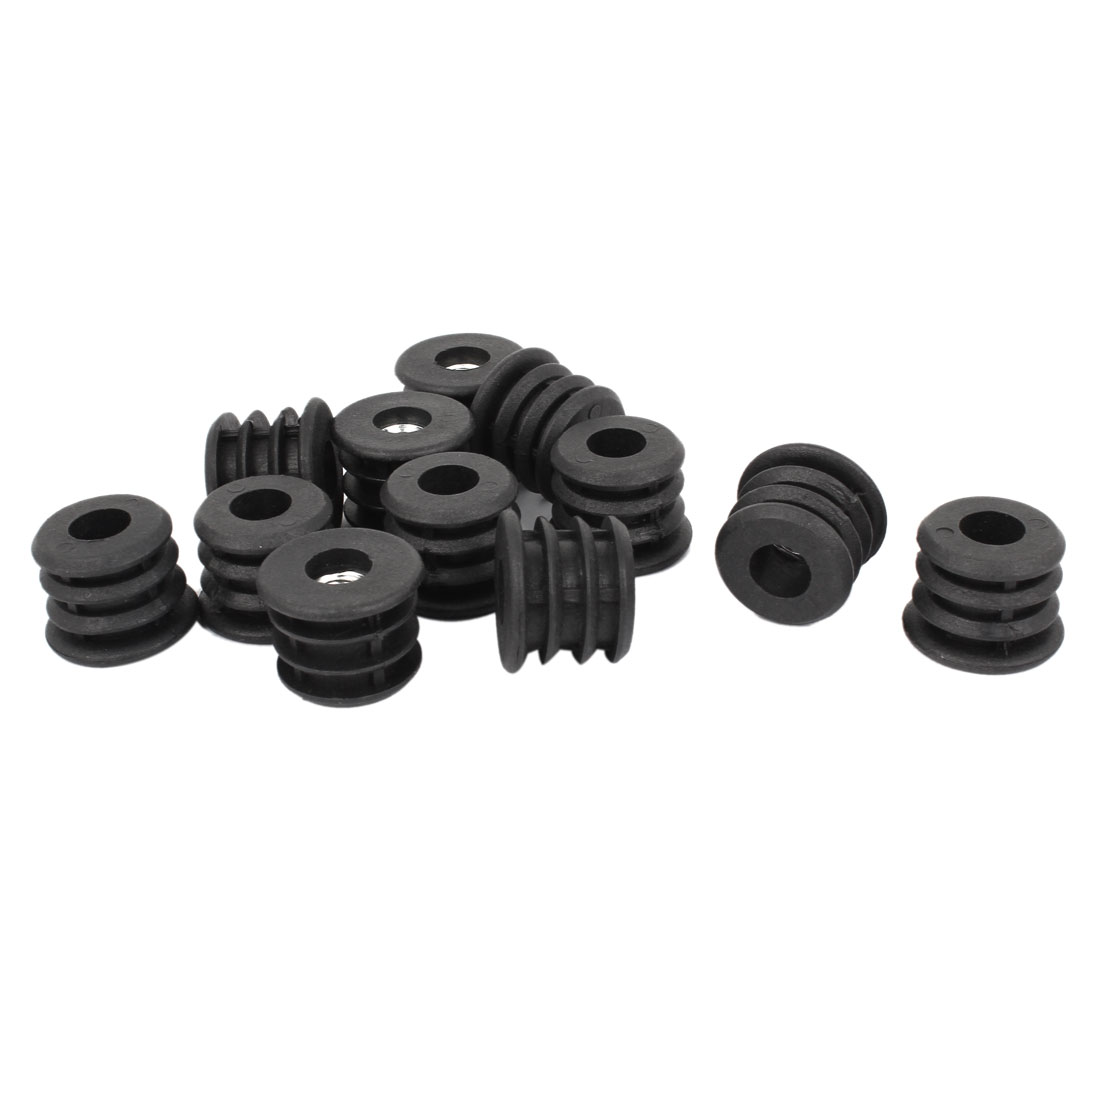 12 Pcs 25mm Dia Plastic Black Blanking End Caps Round Thread Tube Pipe Inserts